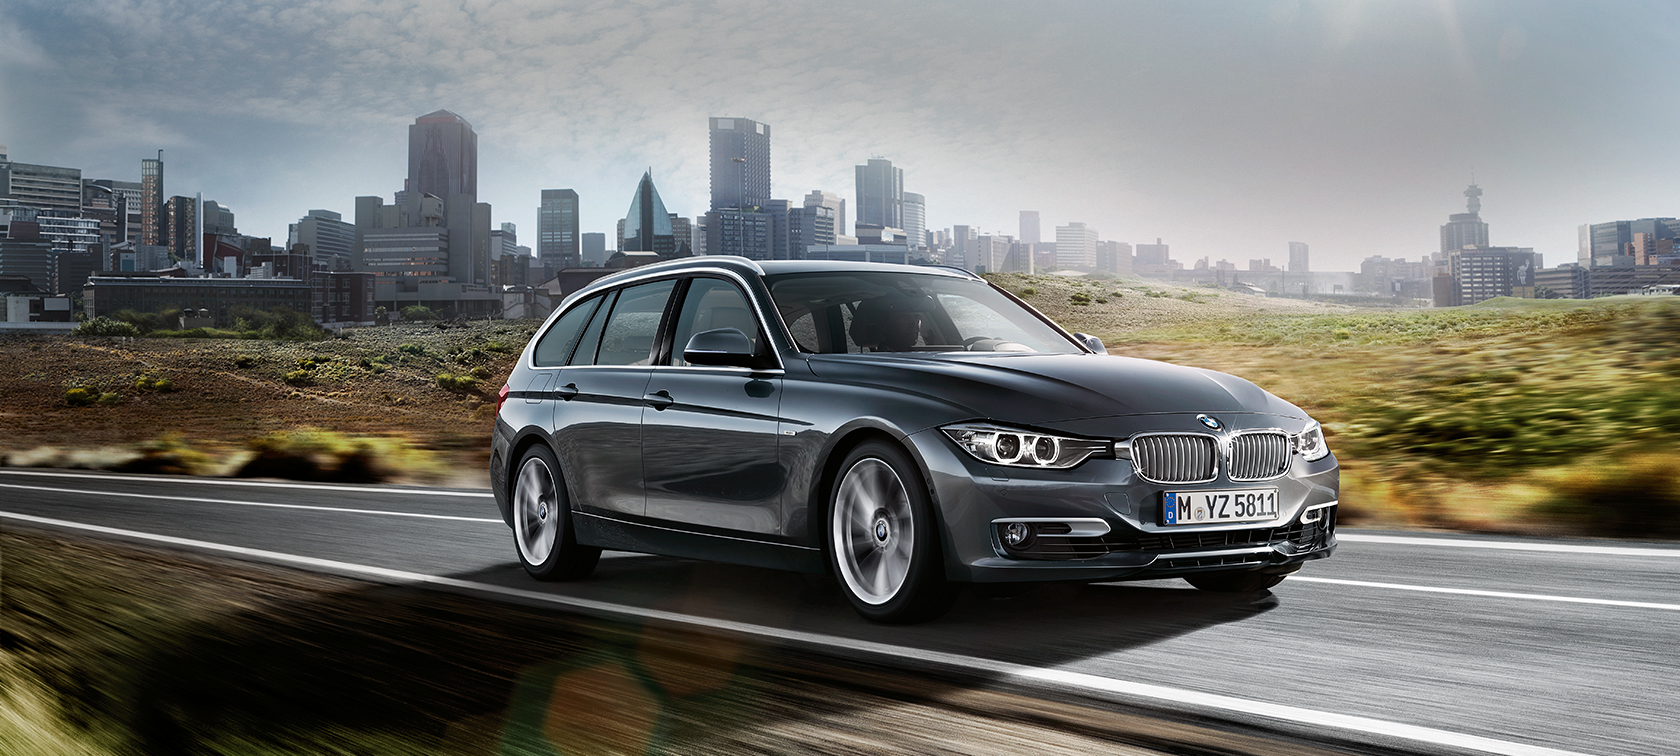 bmw rijders bmw navigatie update proces. Black Bedroom Furniture Sets. Home Design Ideas